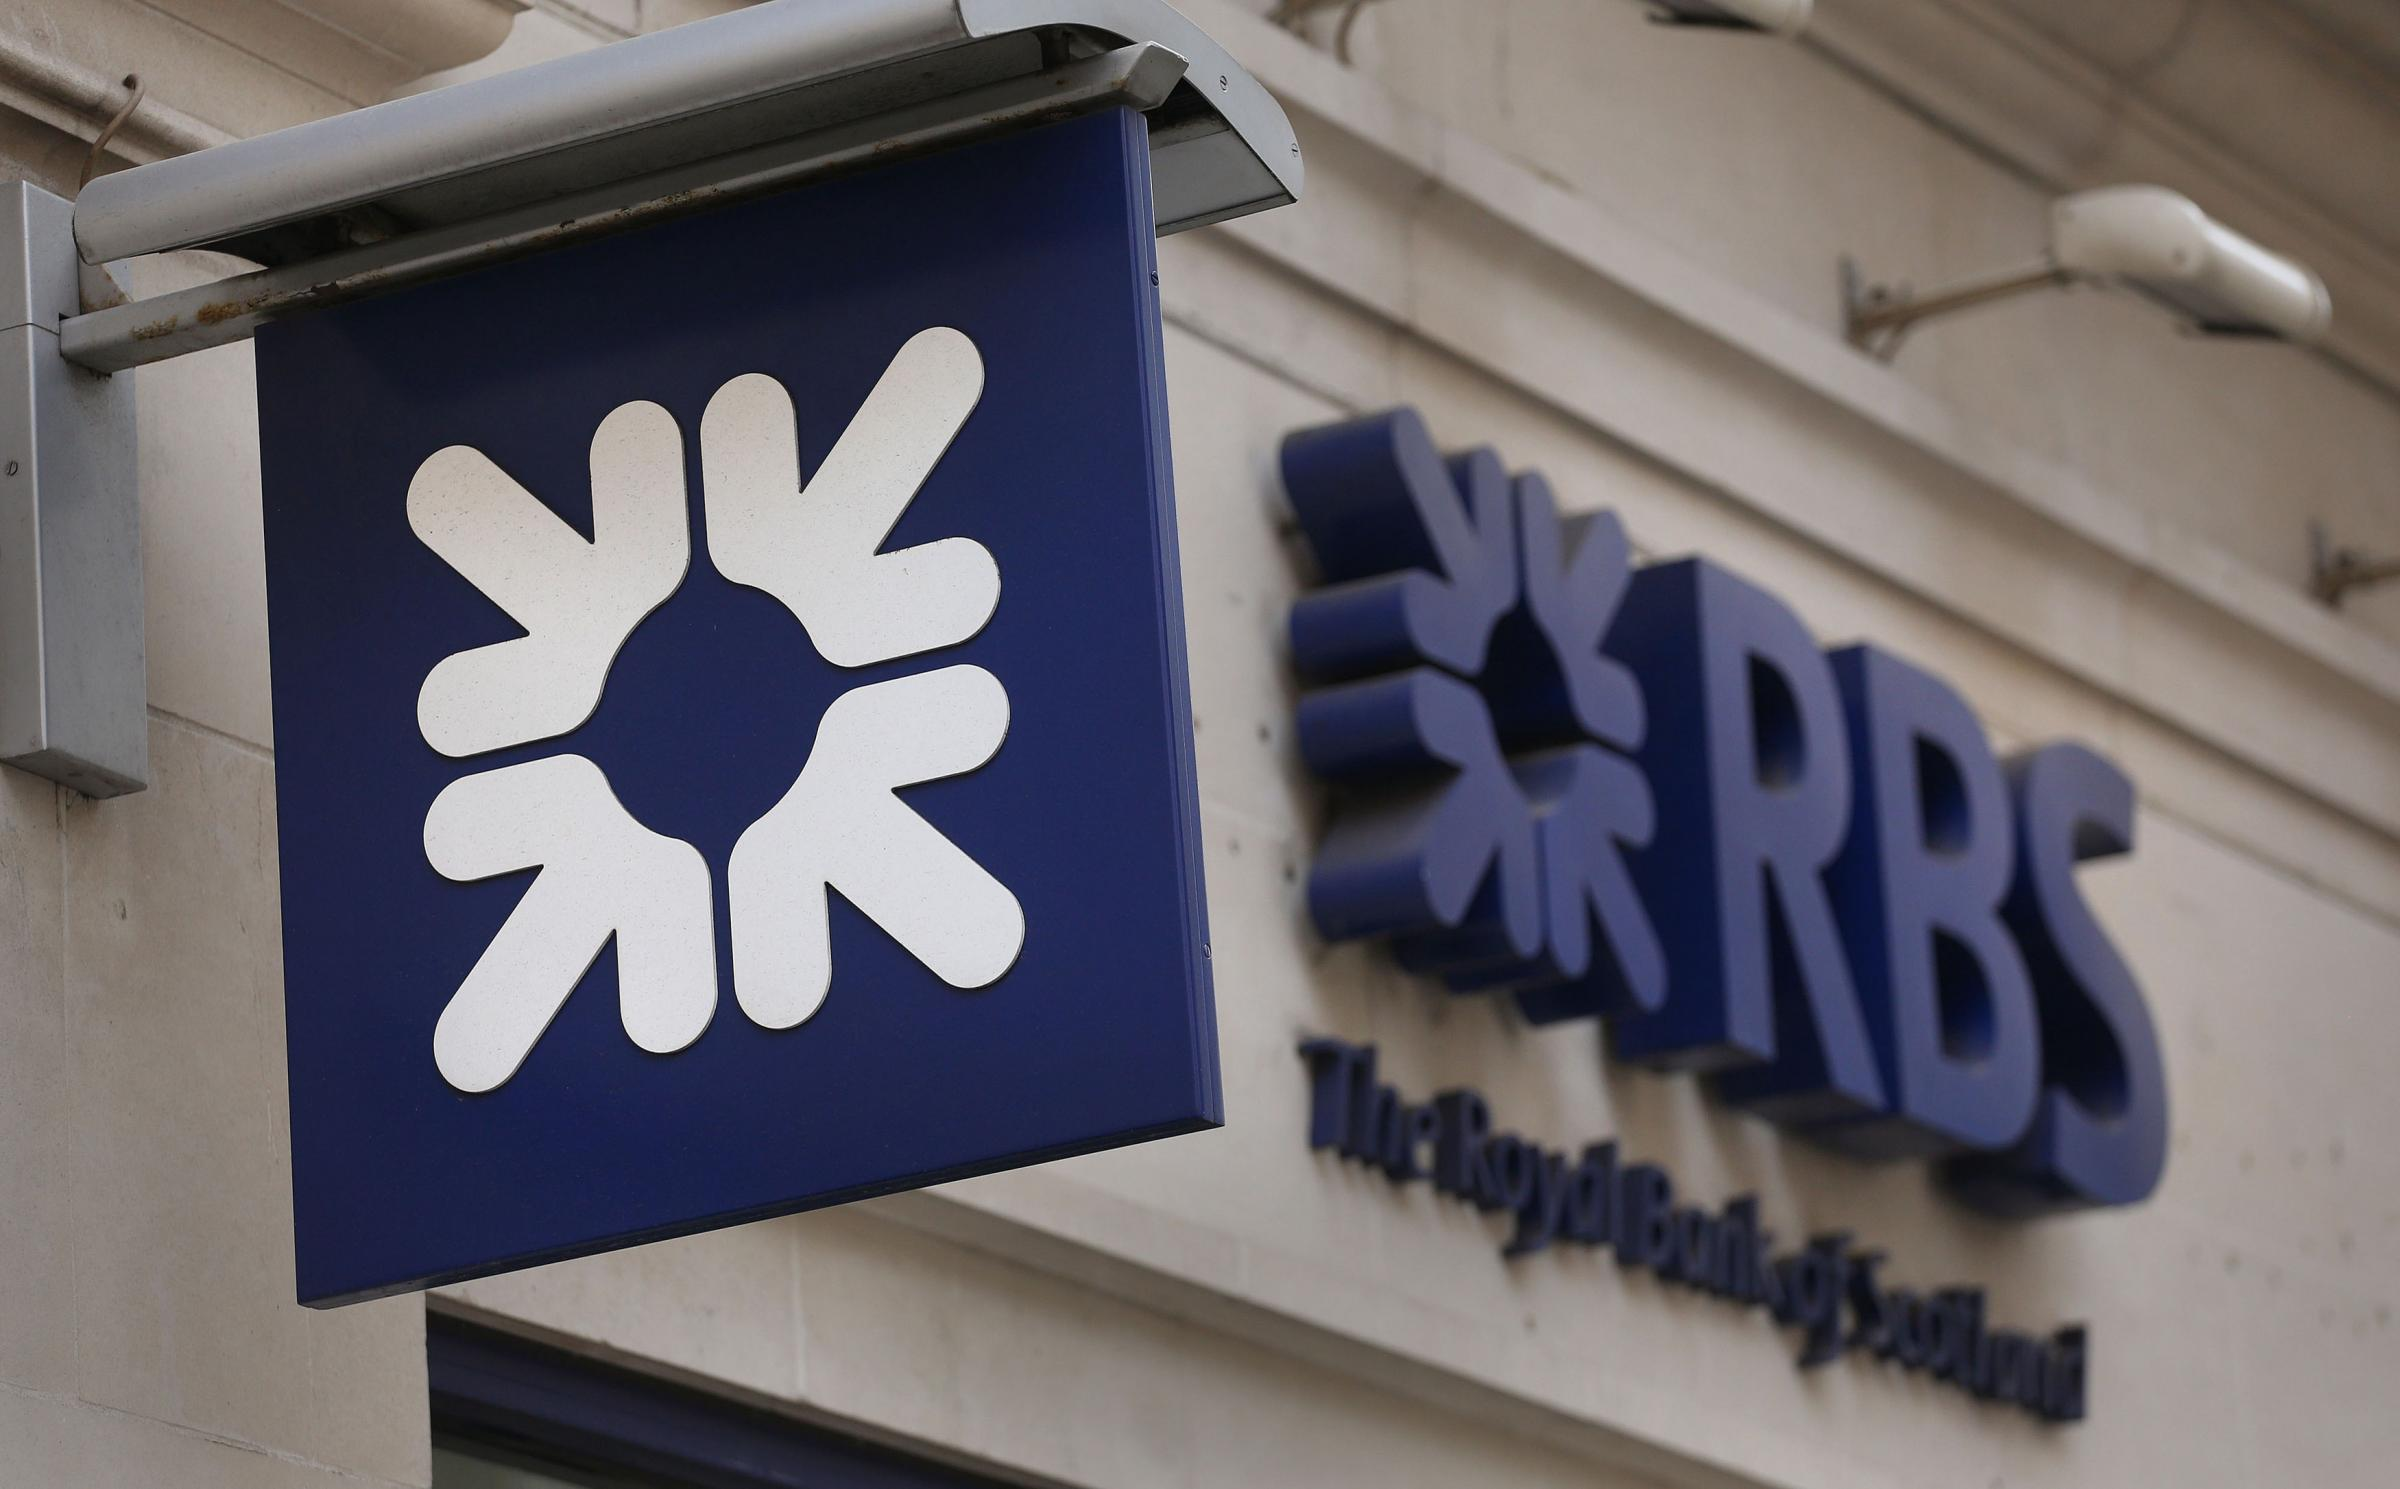 RBS to apply for German banking licence to retain access to clients in European Union post-Brexit